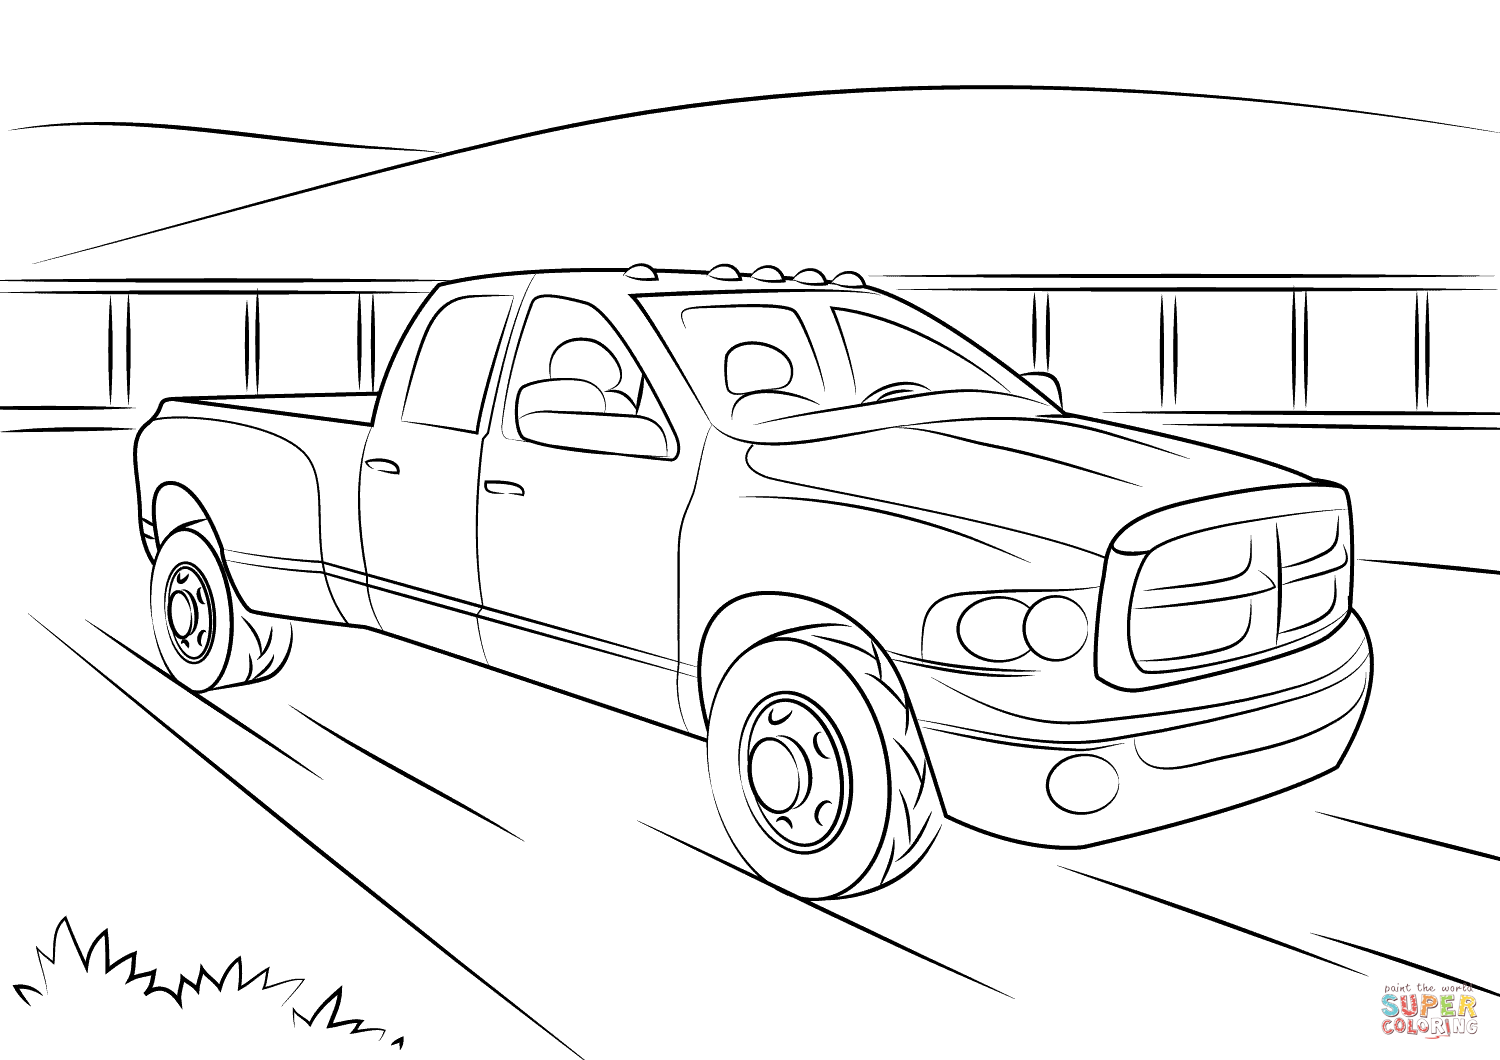 dodge ram truck coloring pages related image children kids39 things to make crafts coloring pages dodge ram truck